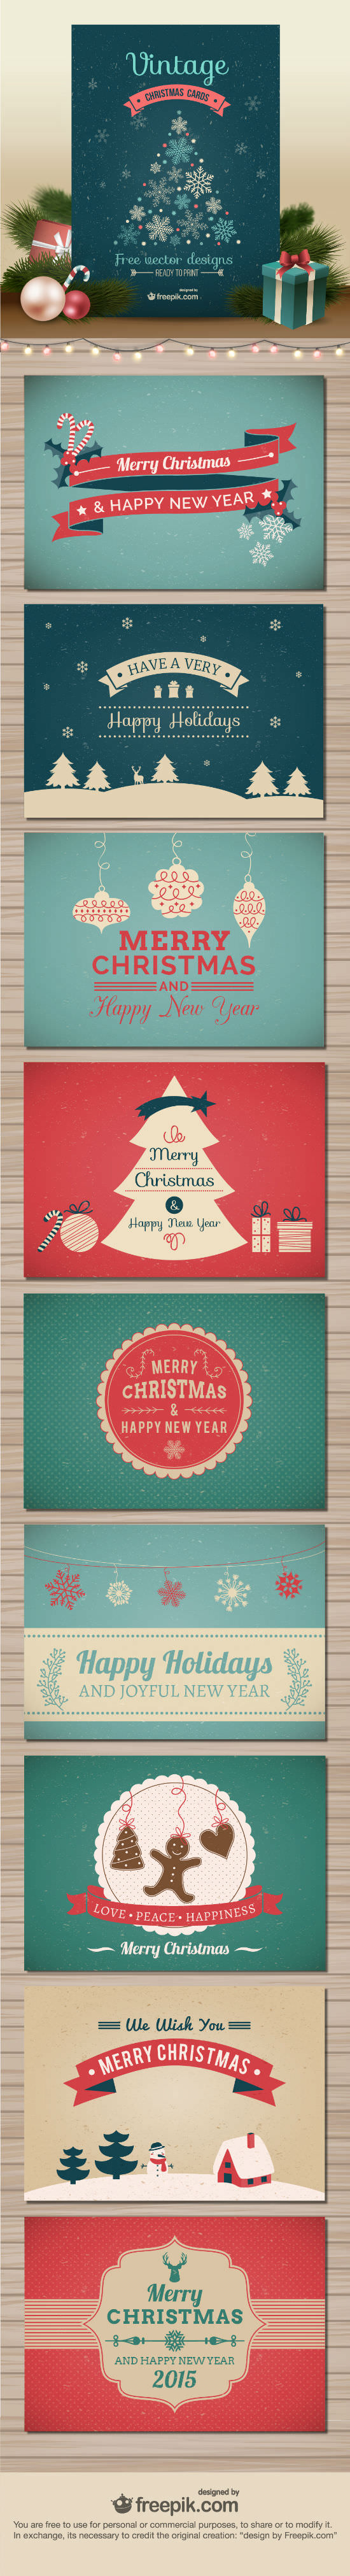 christmascards-all